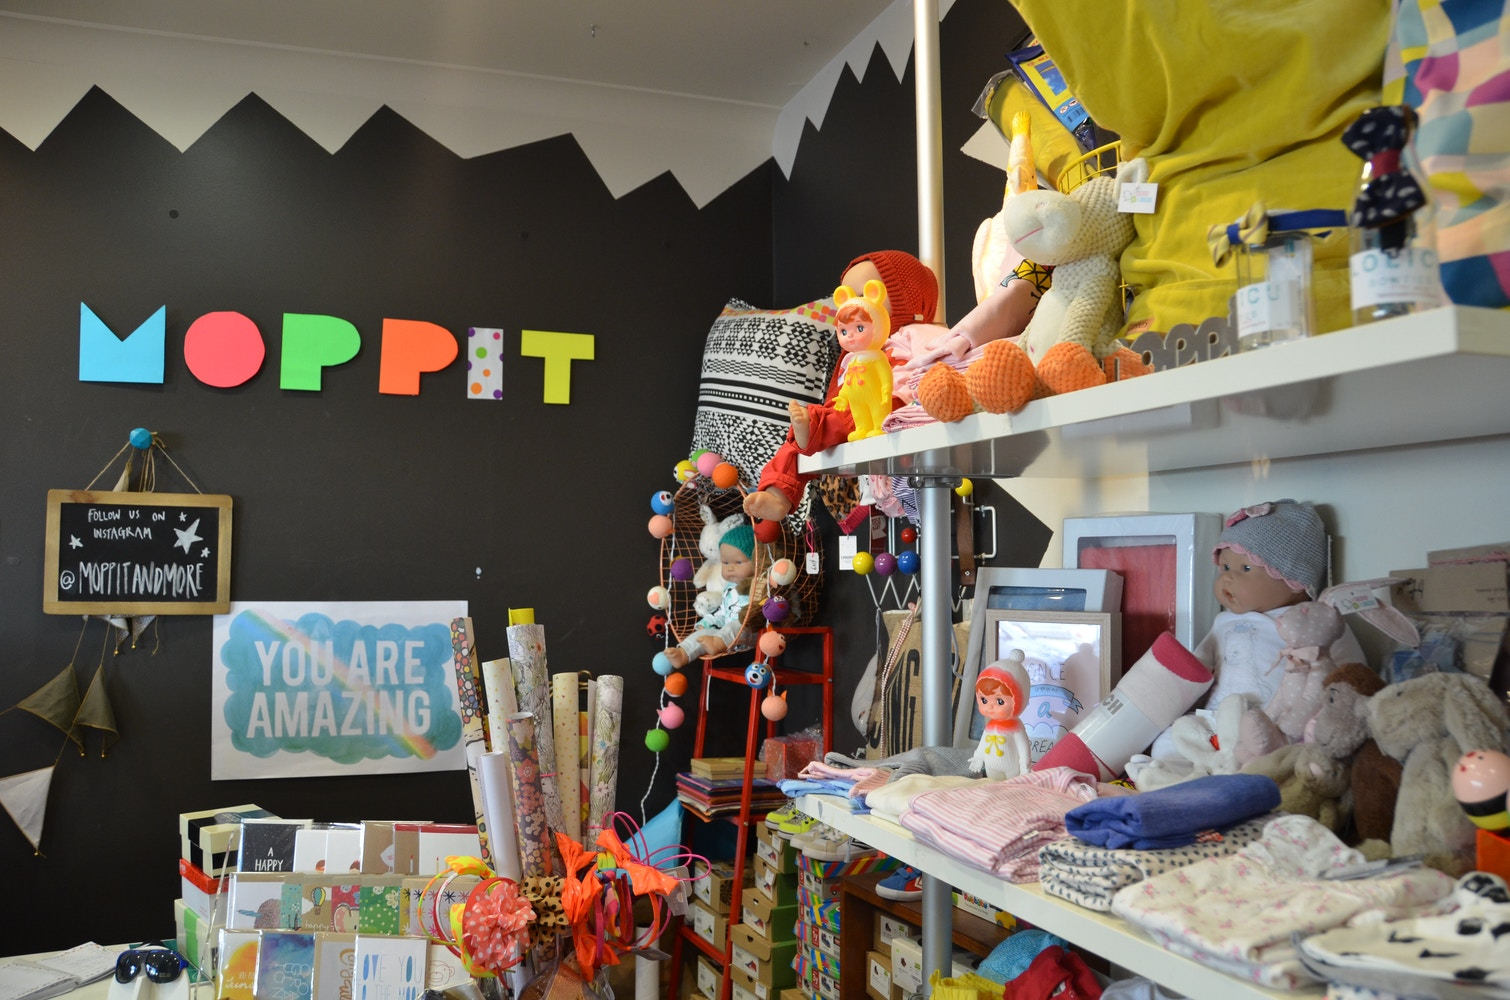 Meet Moppit - A Perfectly Cute Store for Kids